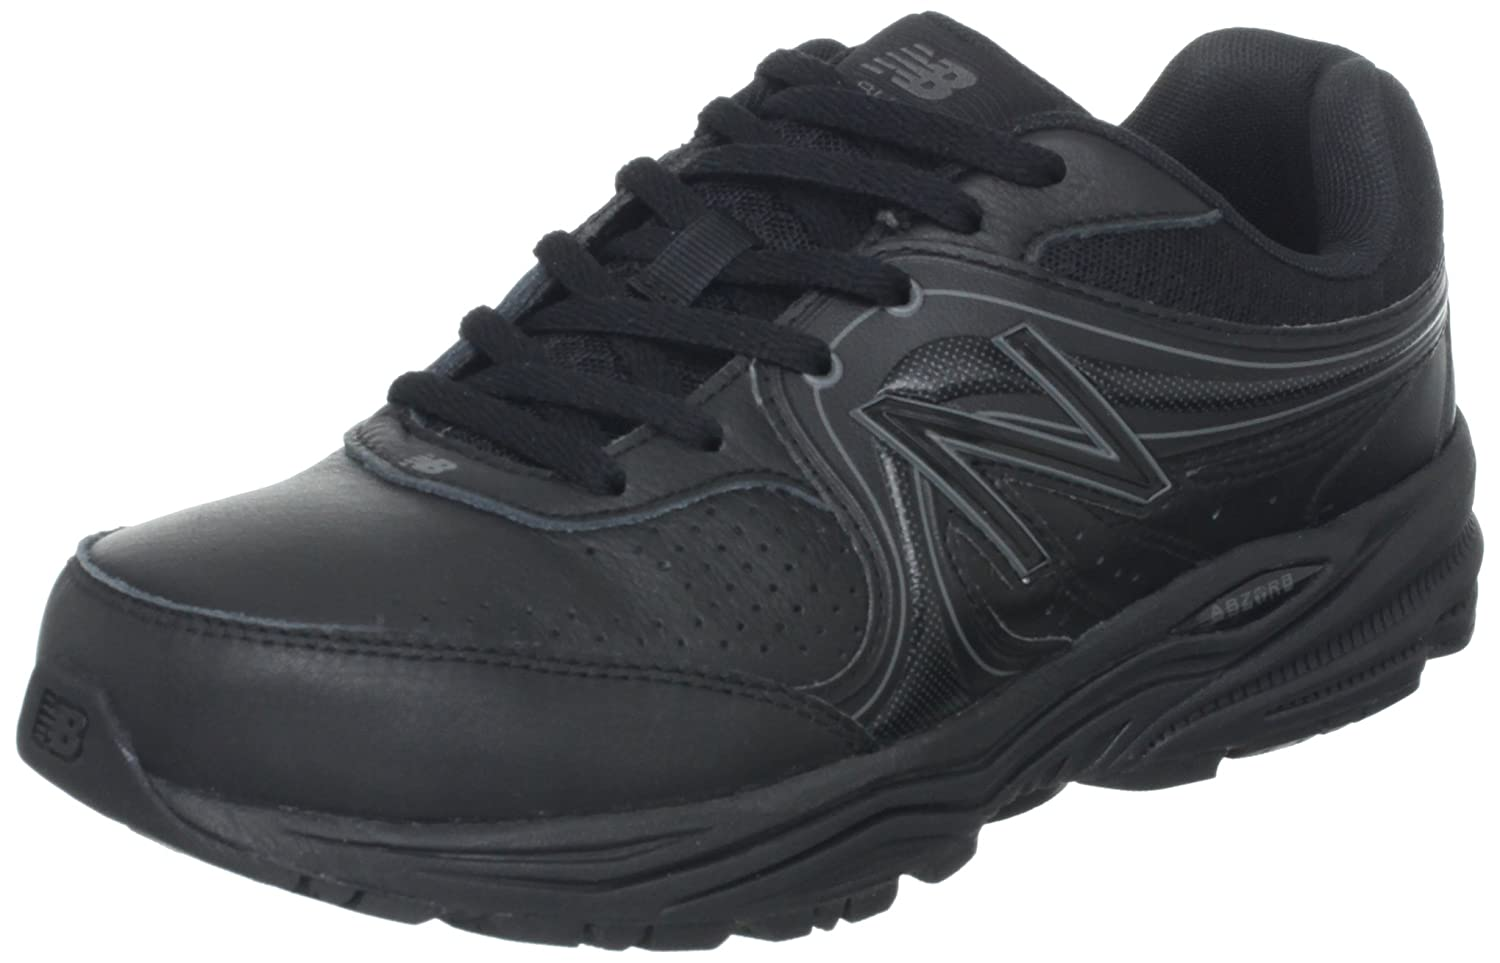 a929d74cf6193 Amazon.com | New Balance Women's ww840, Black, 5 D US | Walking